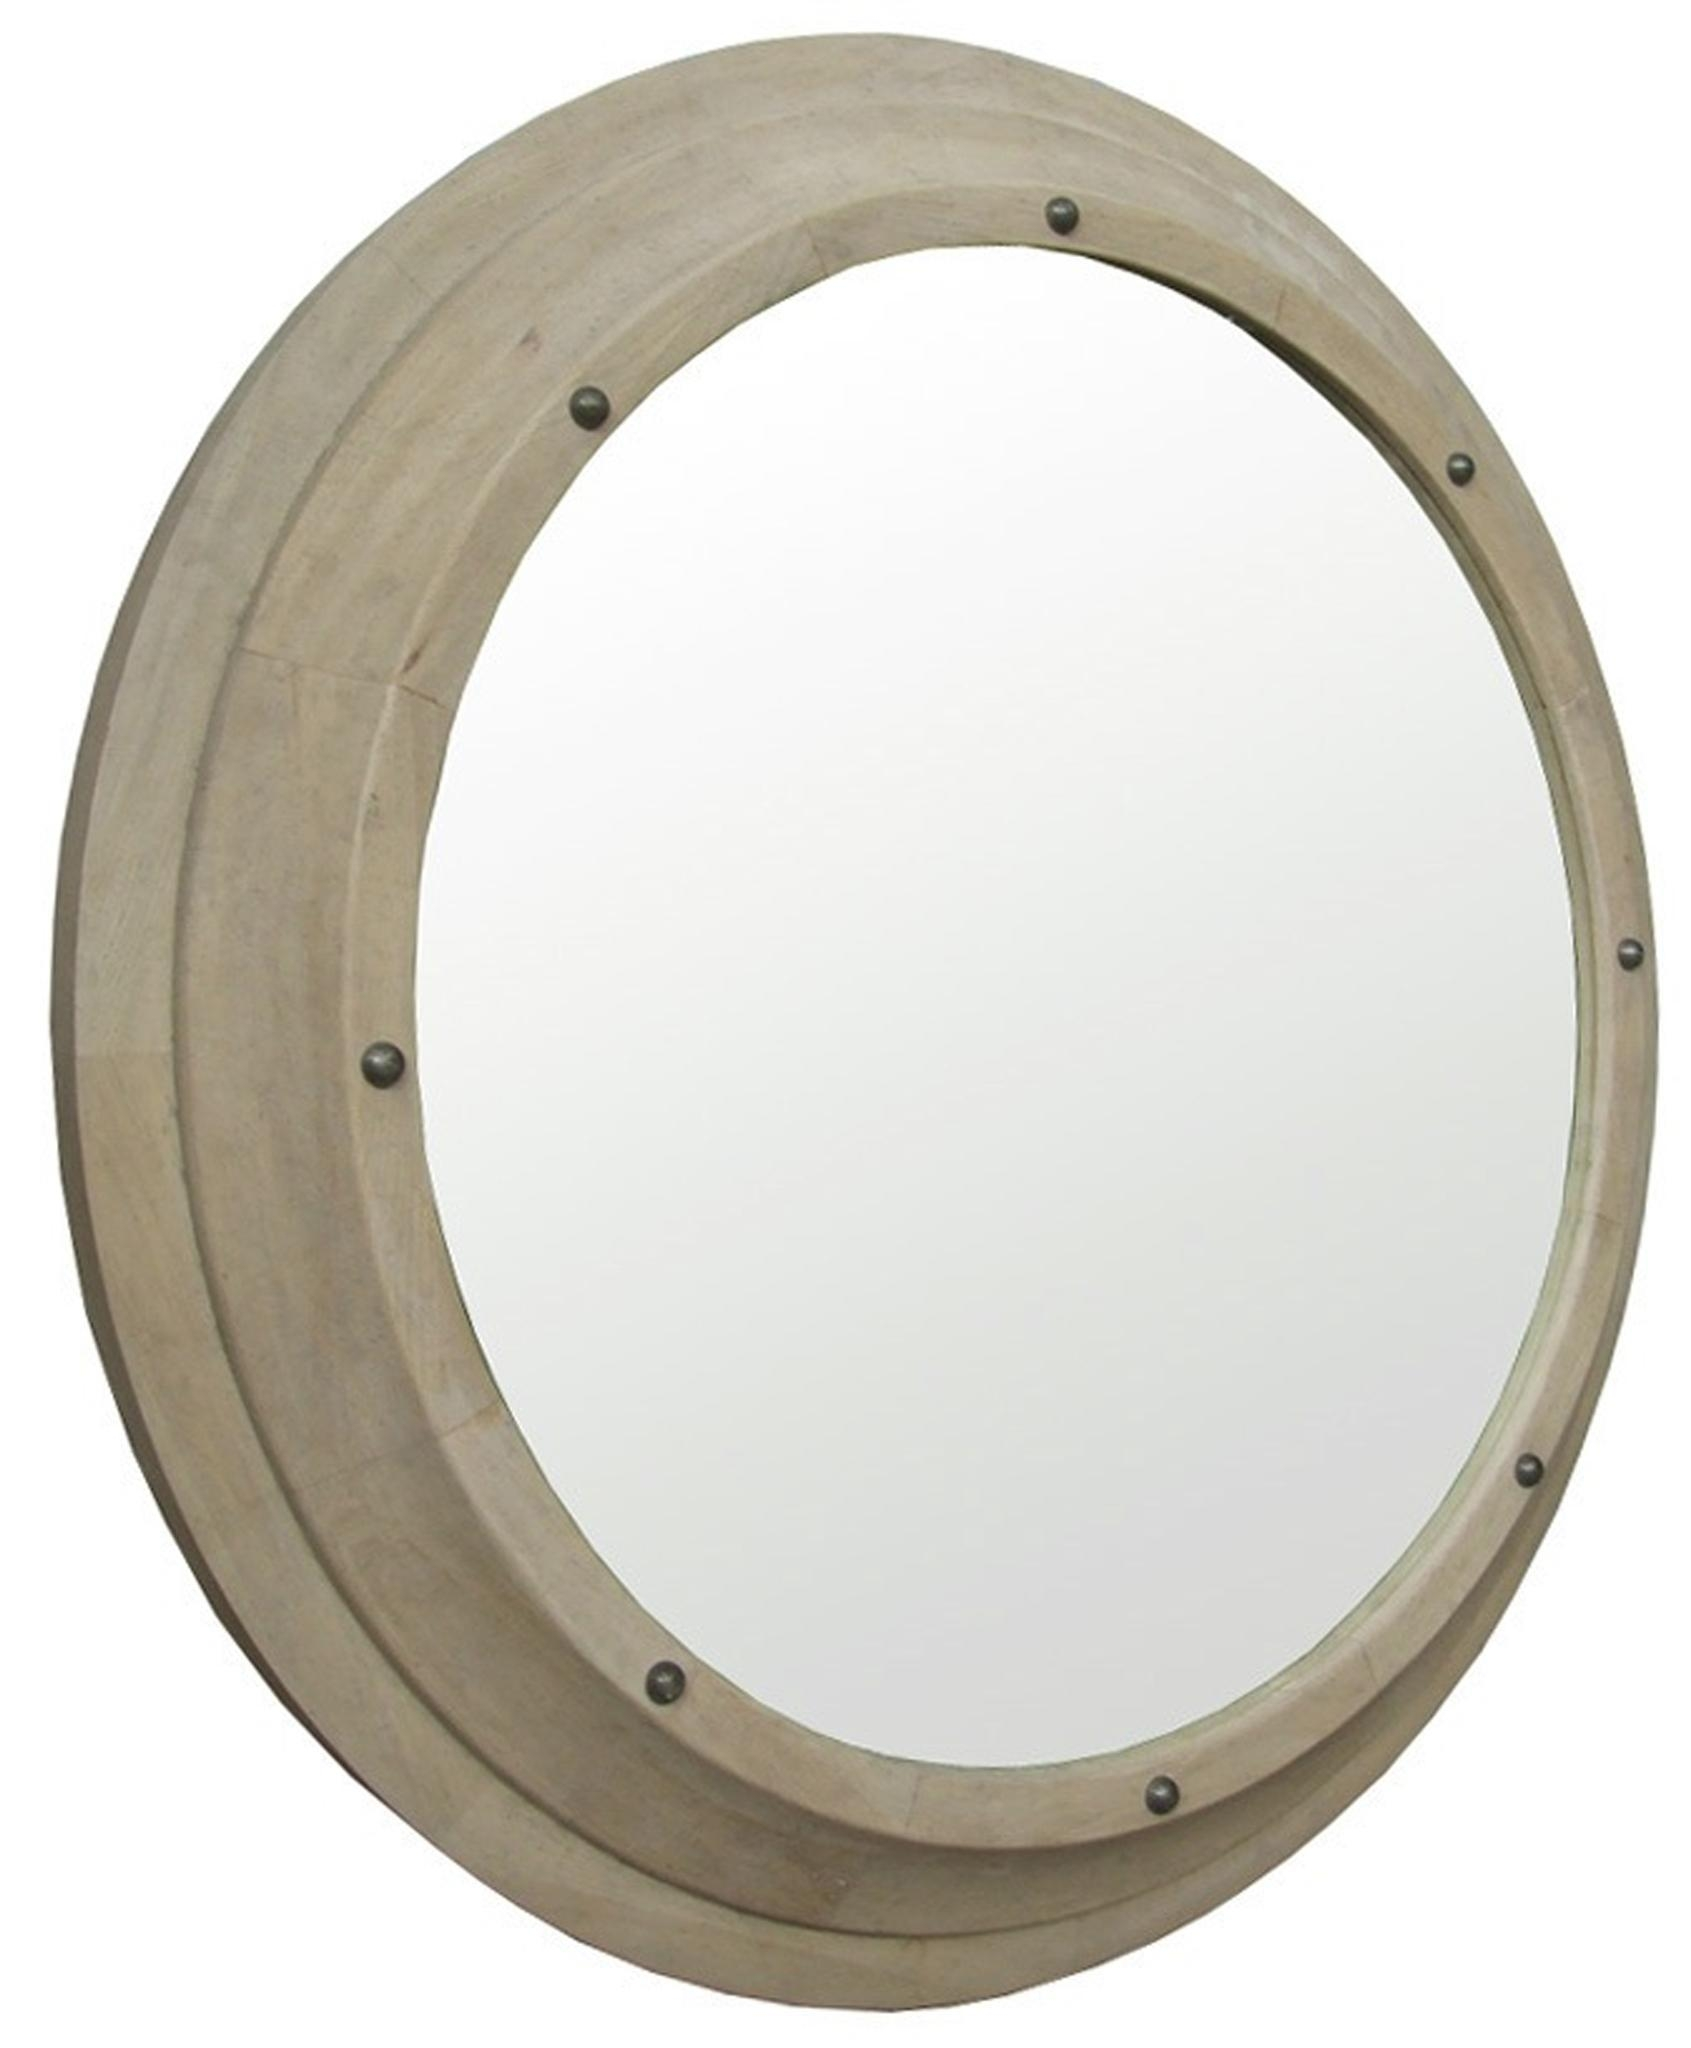 Noir :: With Regard To Porthole Mirrors For Sale (View 4 of 20)